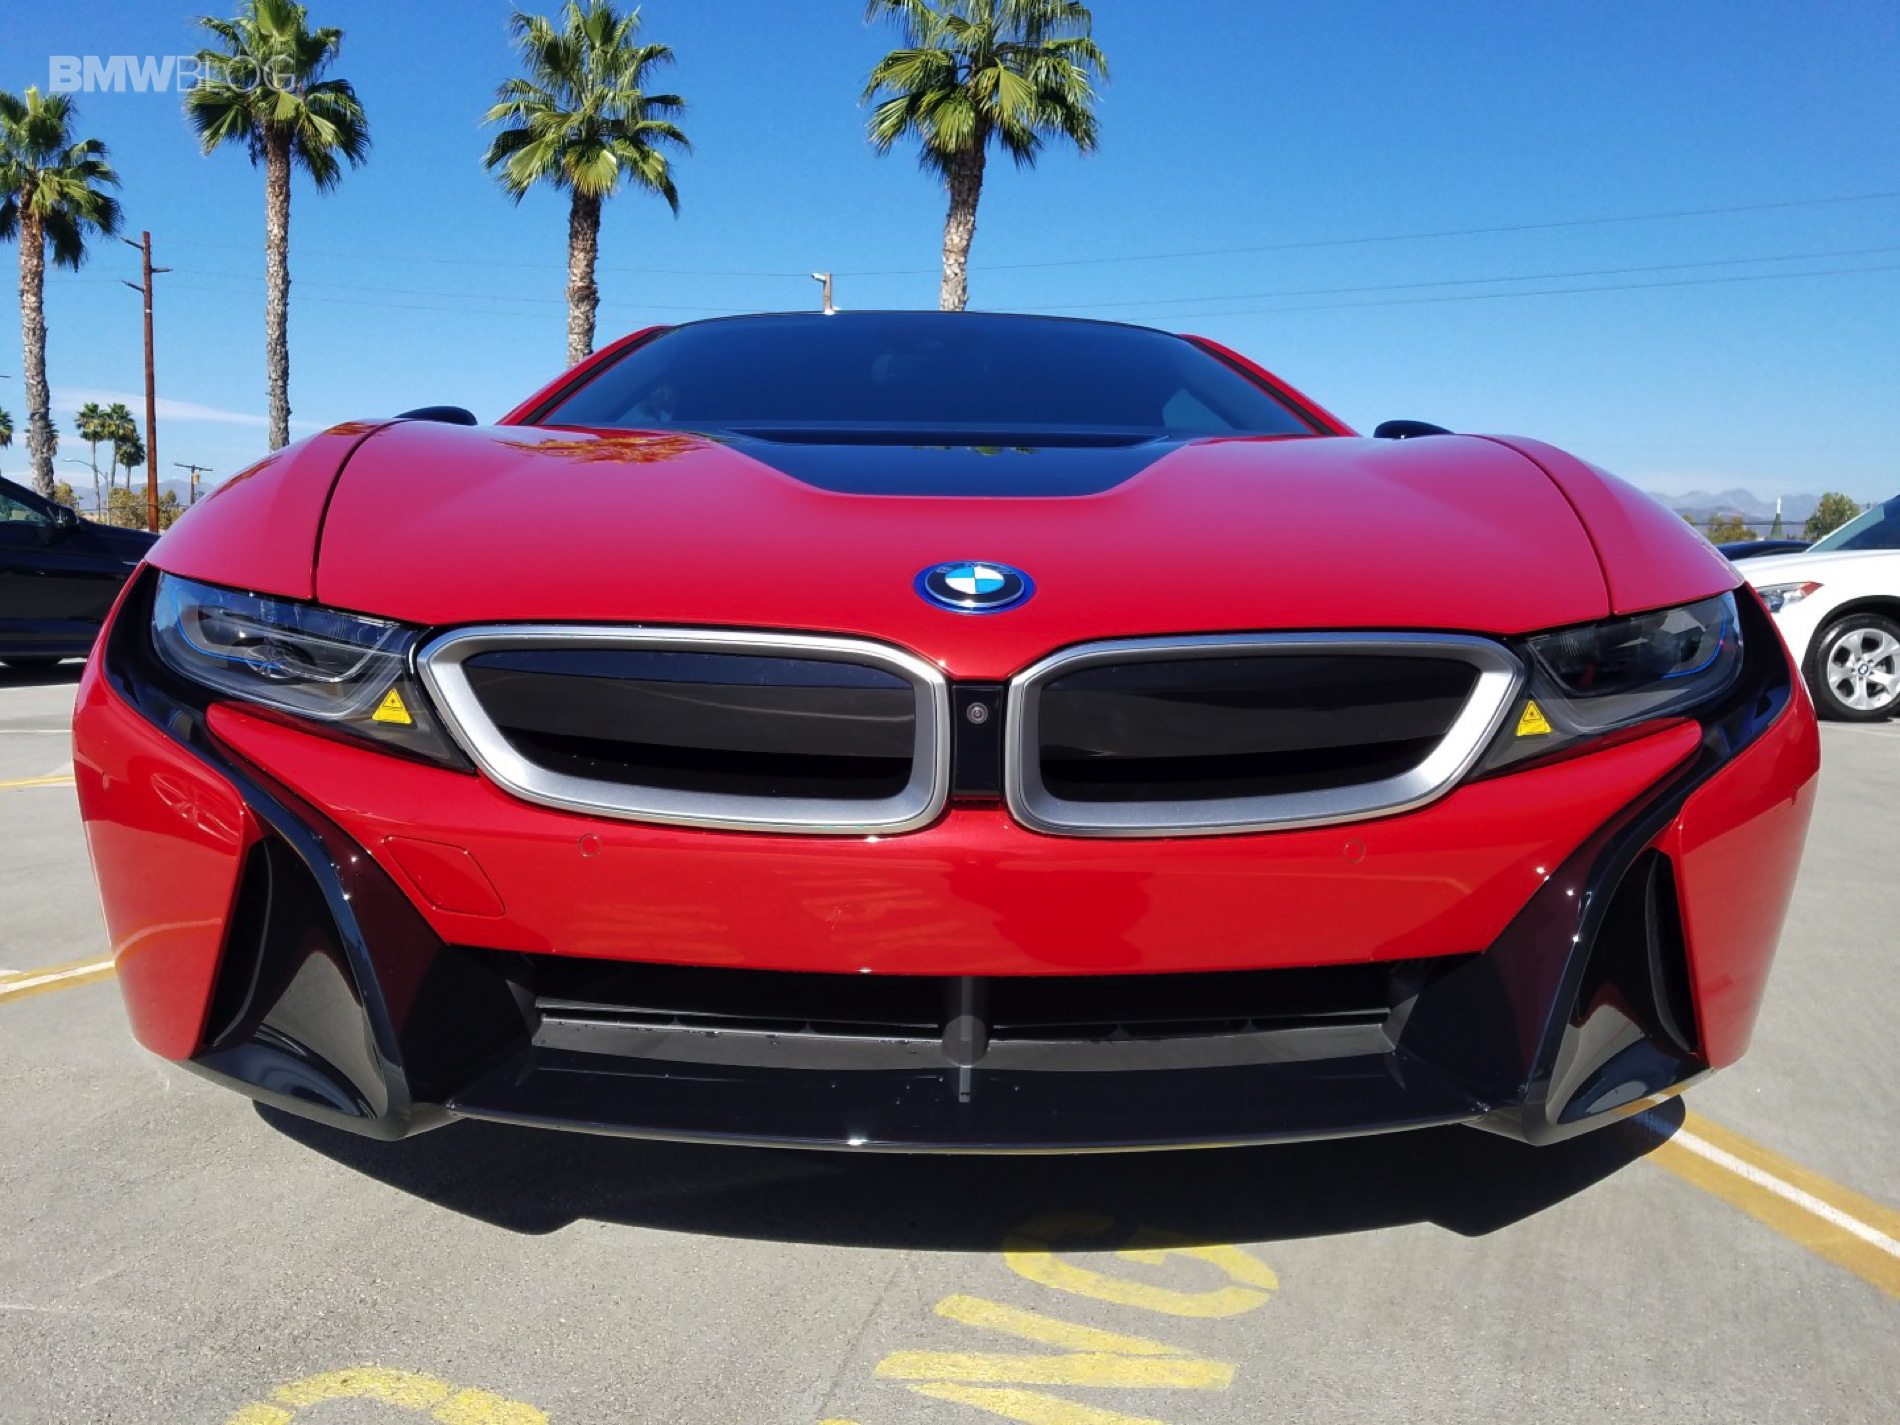 Bmw I8 Protonic Red Shows Up At Local Dealerships